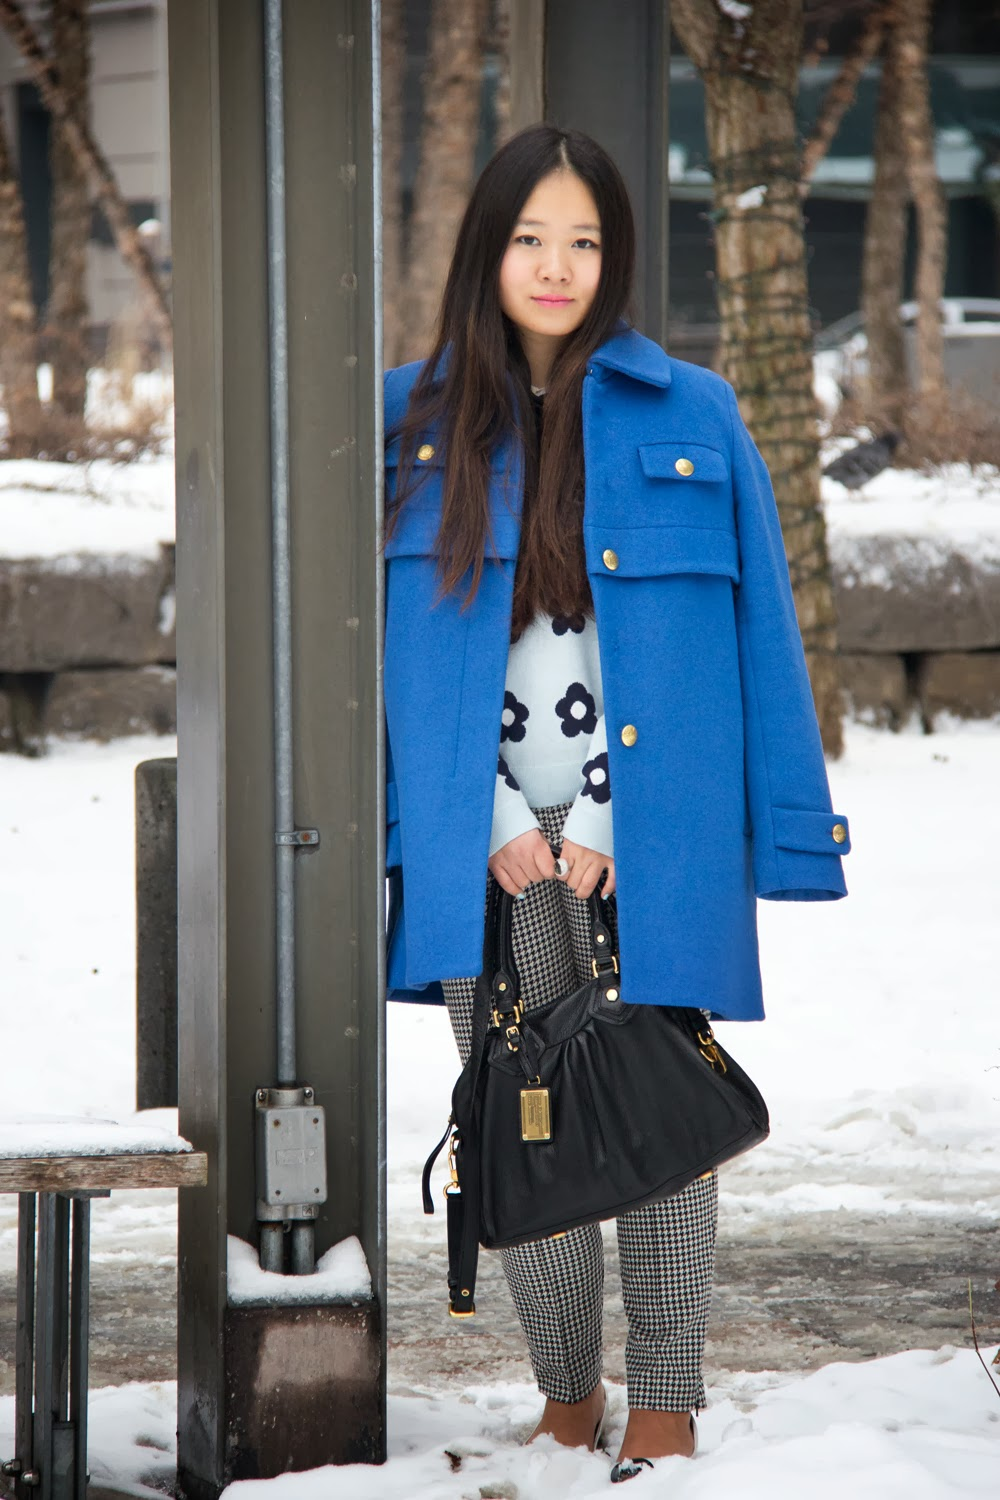 JoeFresh-Blue-Wool-Coat, Flower-Print-Sweater, TopShop-Black-and-White-Pants